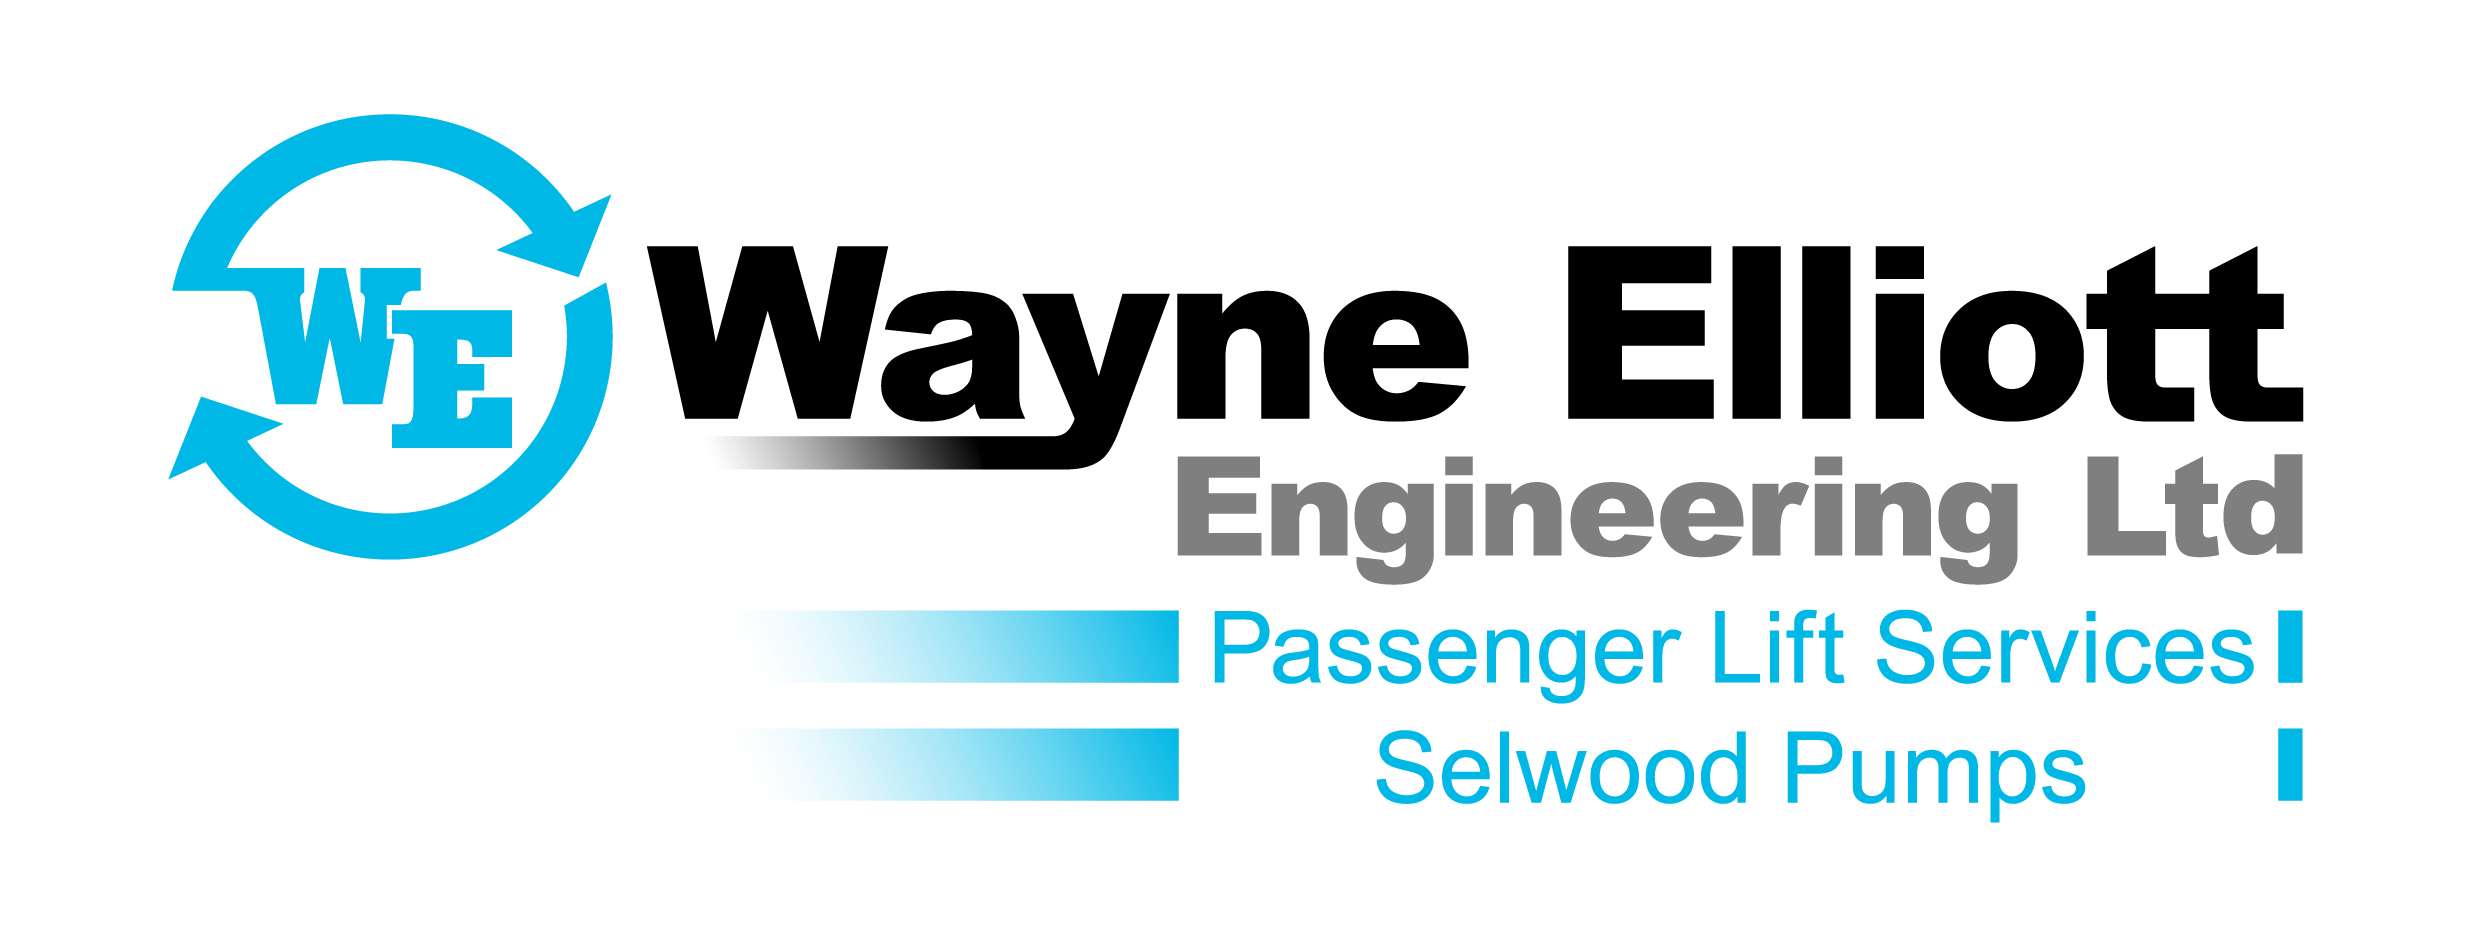 WAYNE ELLIOTT ENGINEERING LTD